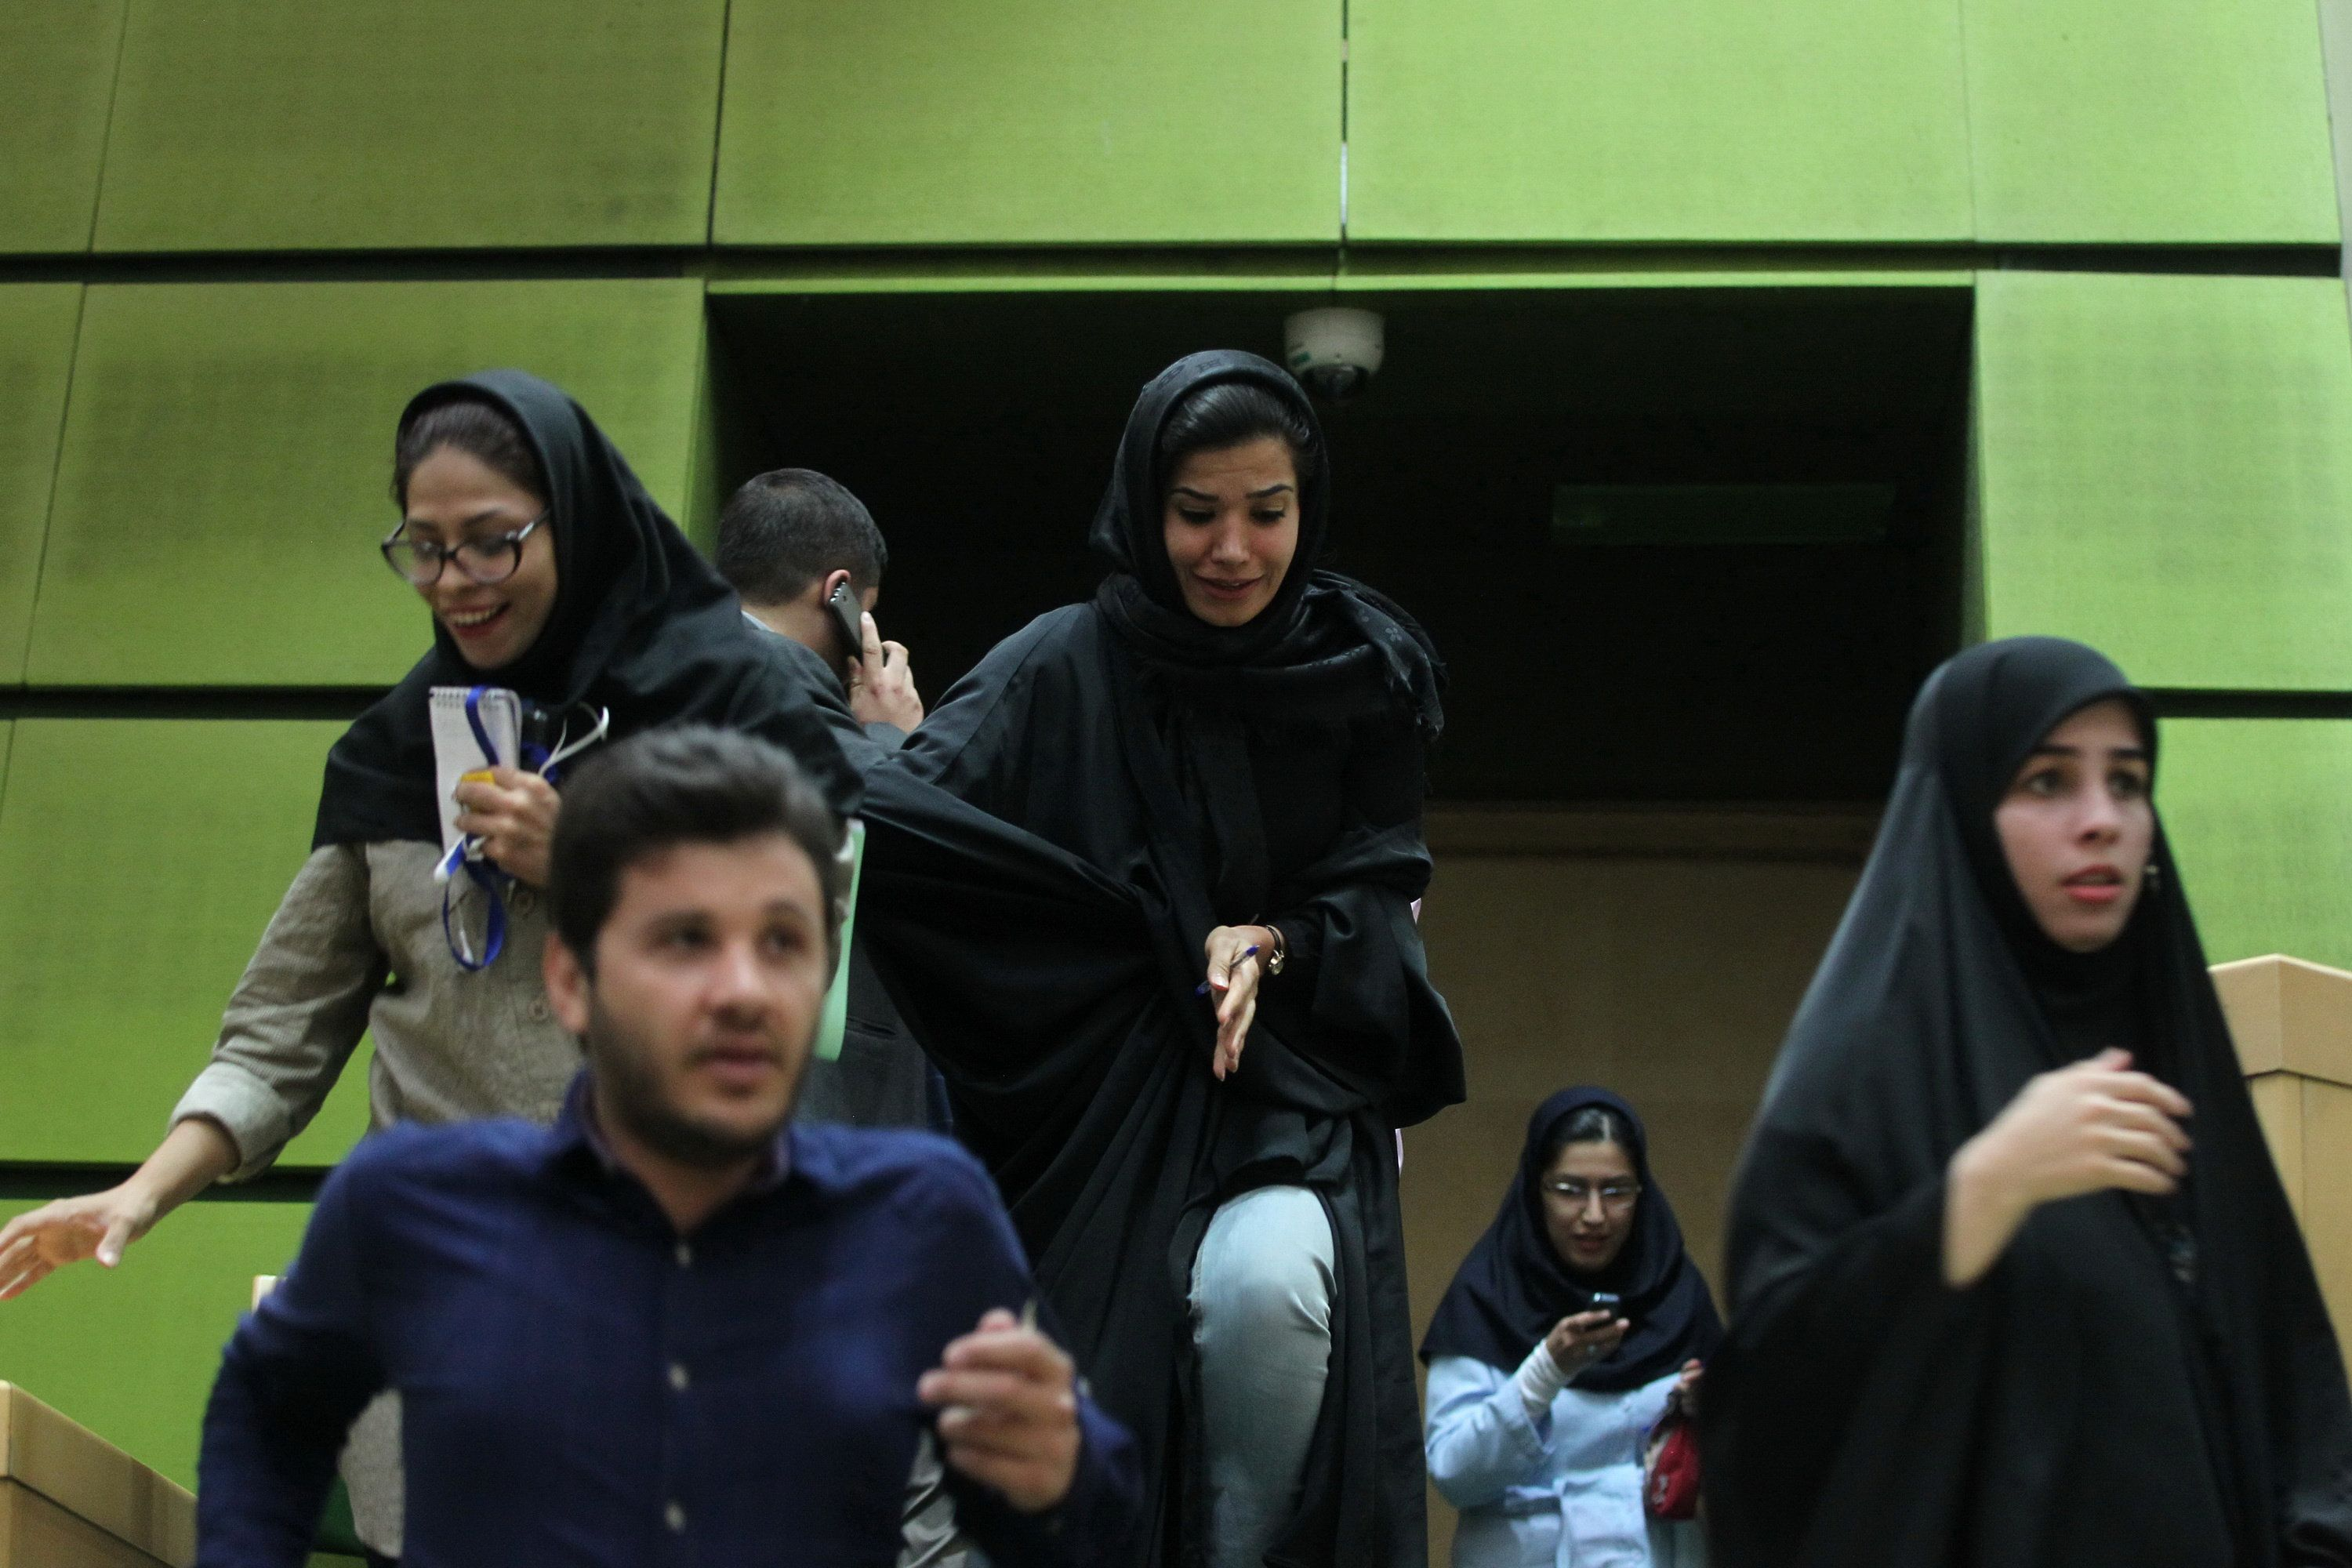 Women are seen inside the parliament during an attack in central Tehran, Iran, June 7, 2017. TIMA via REUTERS ATTENTION EDITORS - THIS IMAGE WAS PROVIDED BY A THIRD PARTY. FOR EDITORIAL USE ONLY.